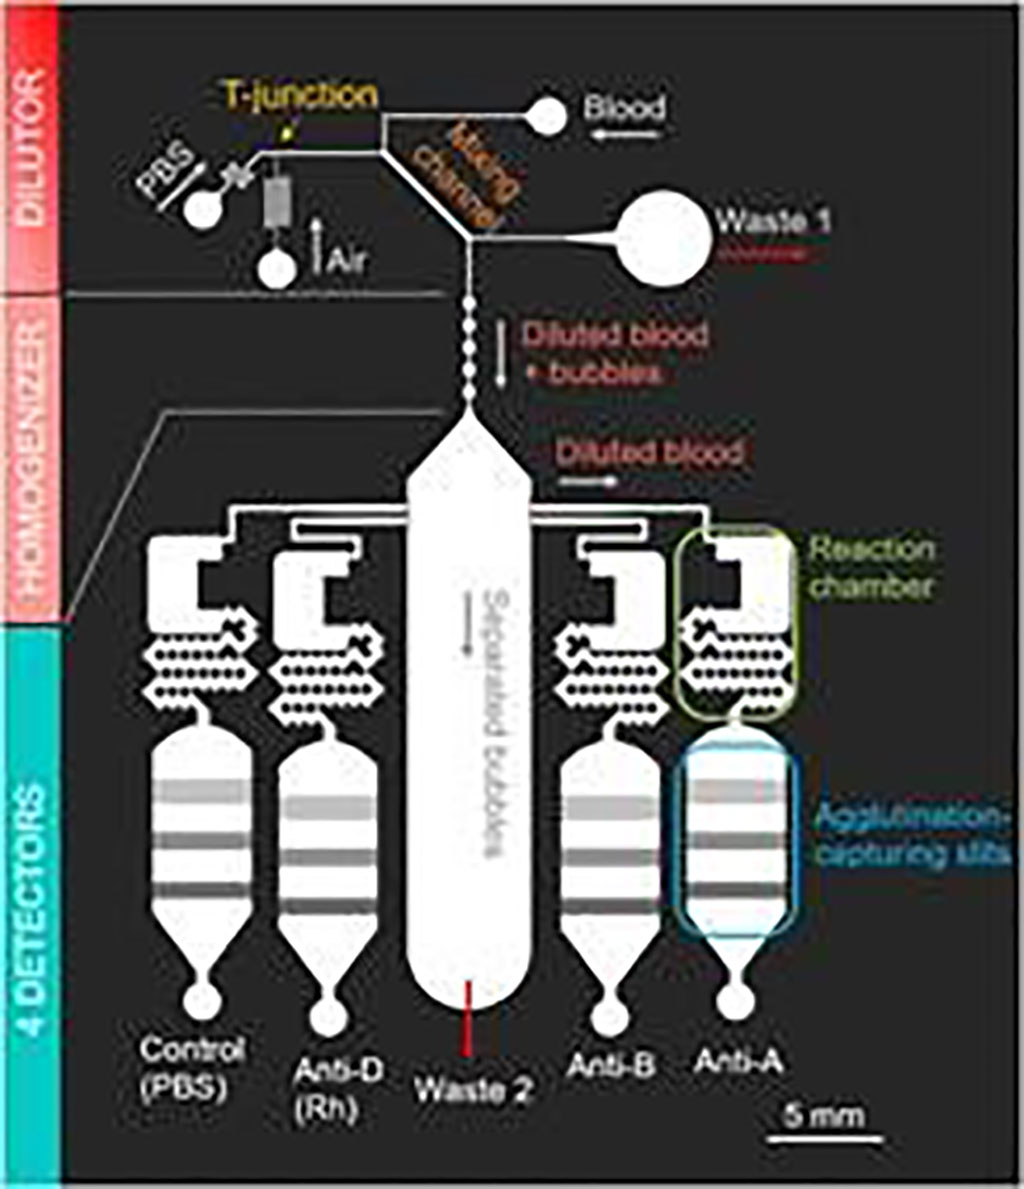 Image: Schematic diagram of the fully-automatic blood-typing chip exploiting bubbles for quick dilution and detection (Photo courtesy of Tokyo University of Science).